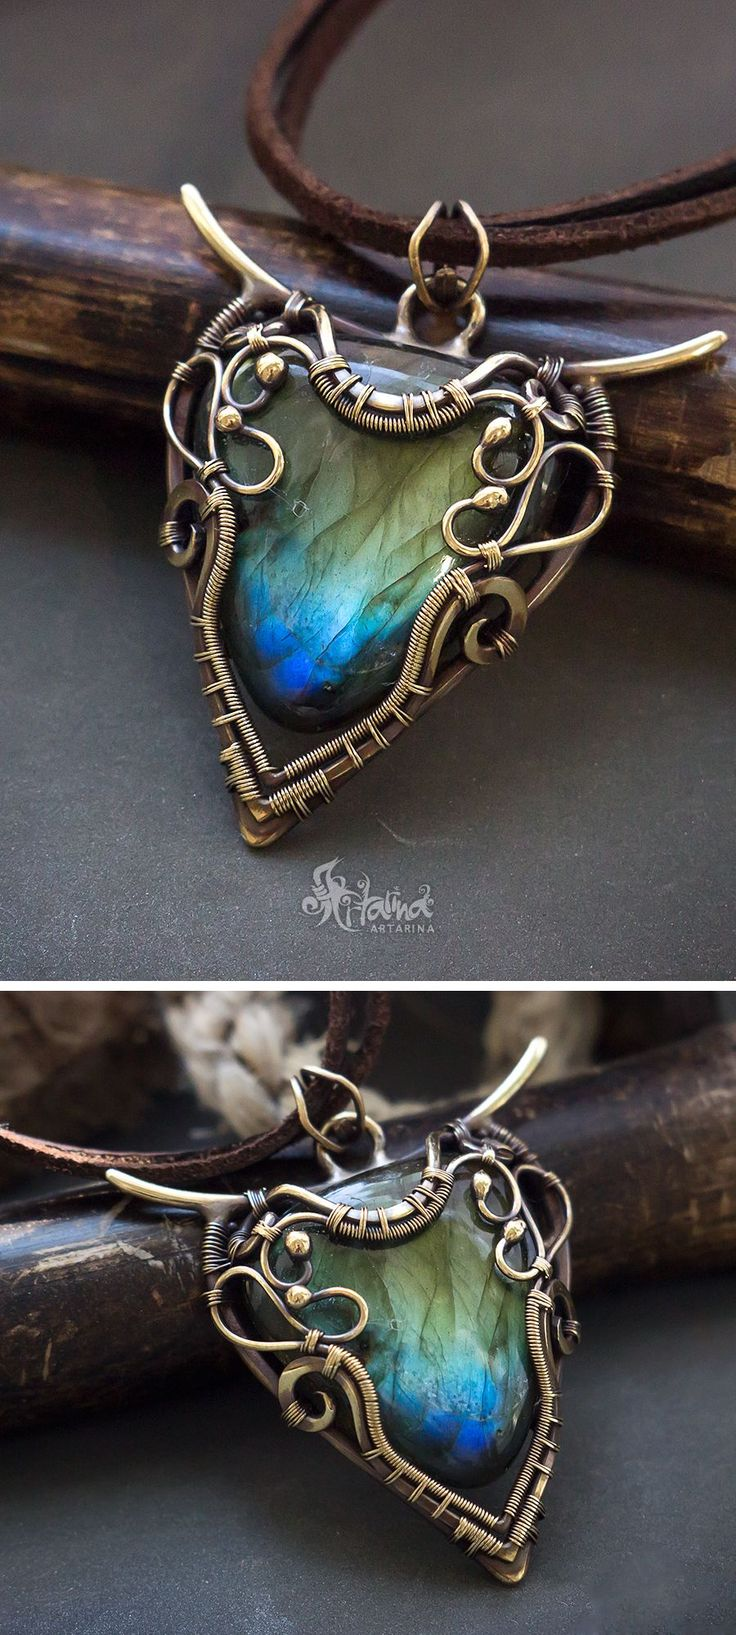 638 best Schmuck images on Pinterest | Jewerly, Charm bracelets and ...